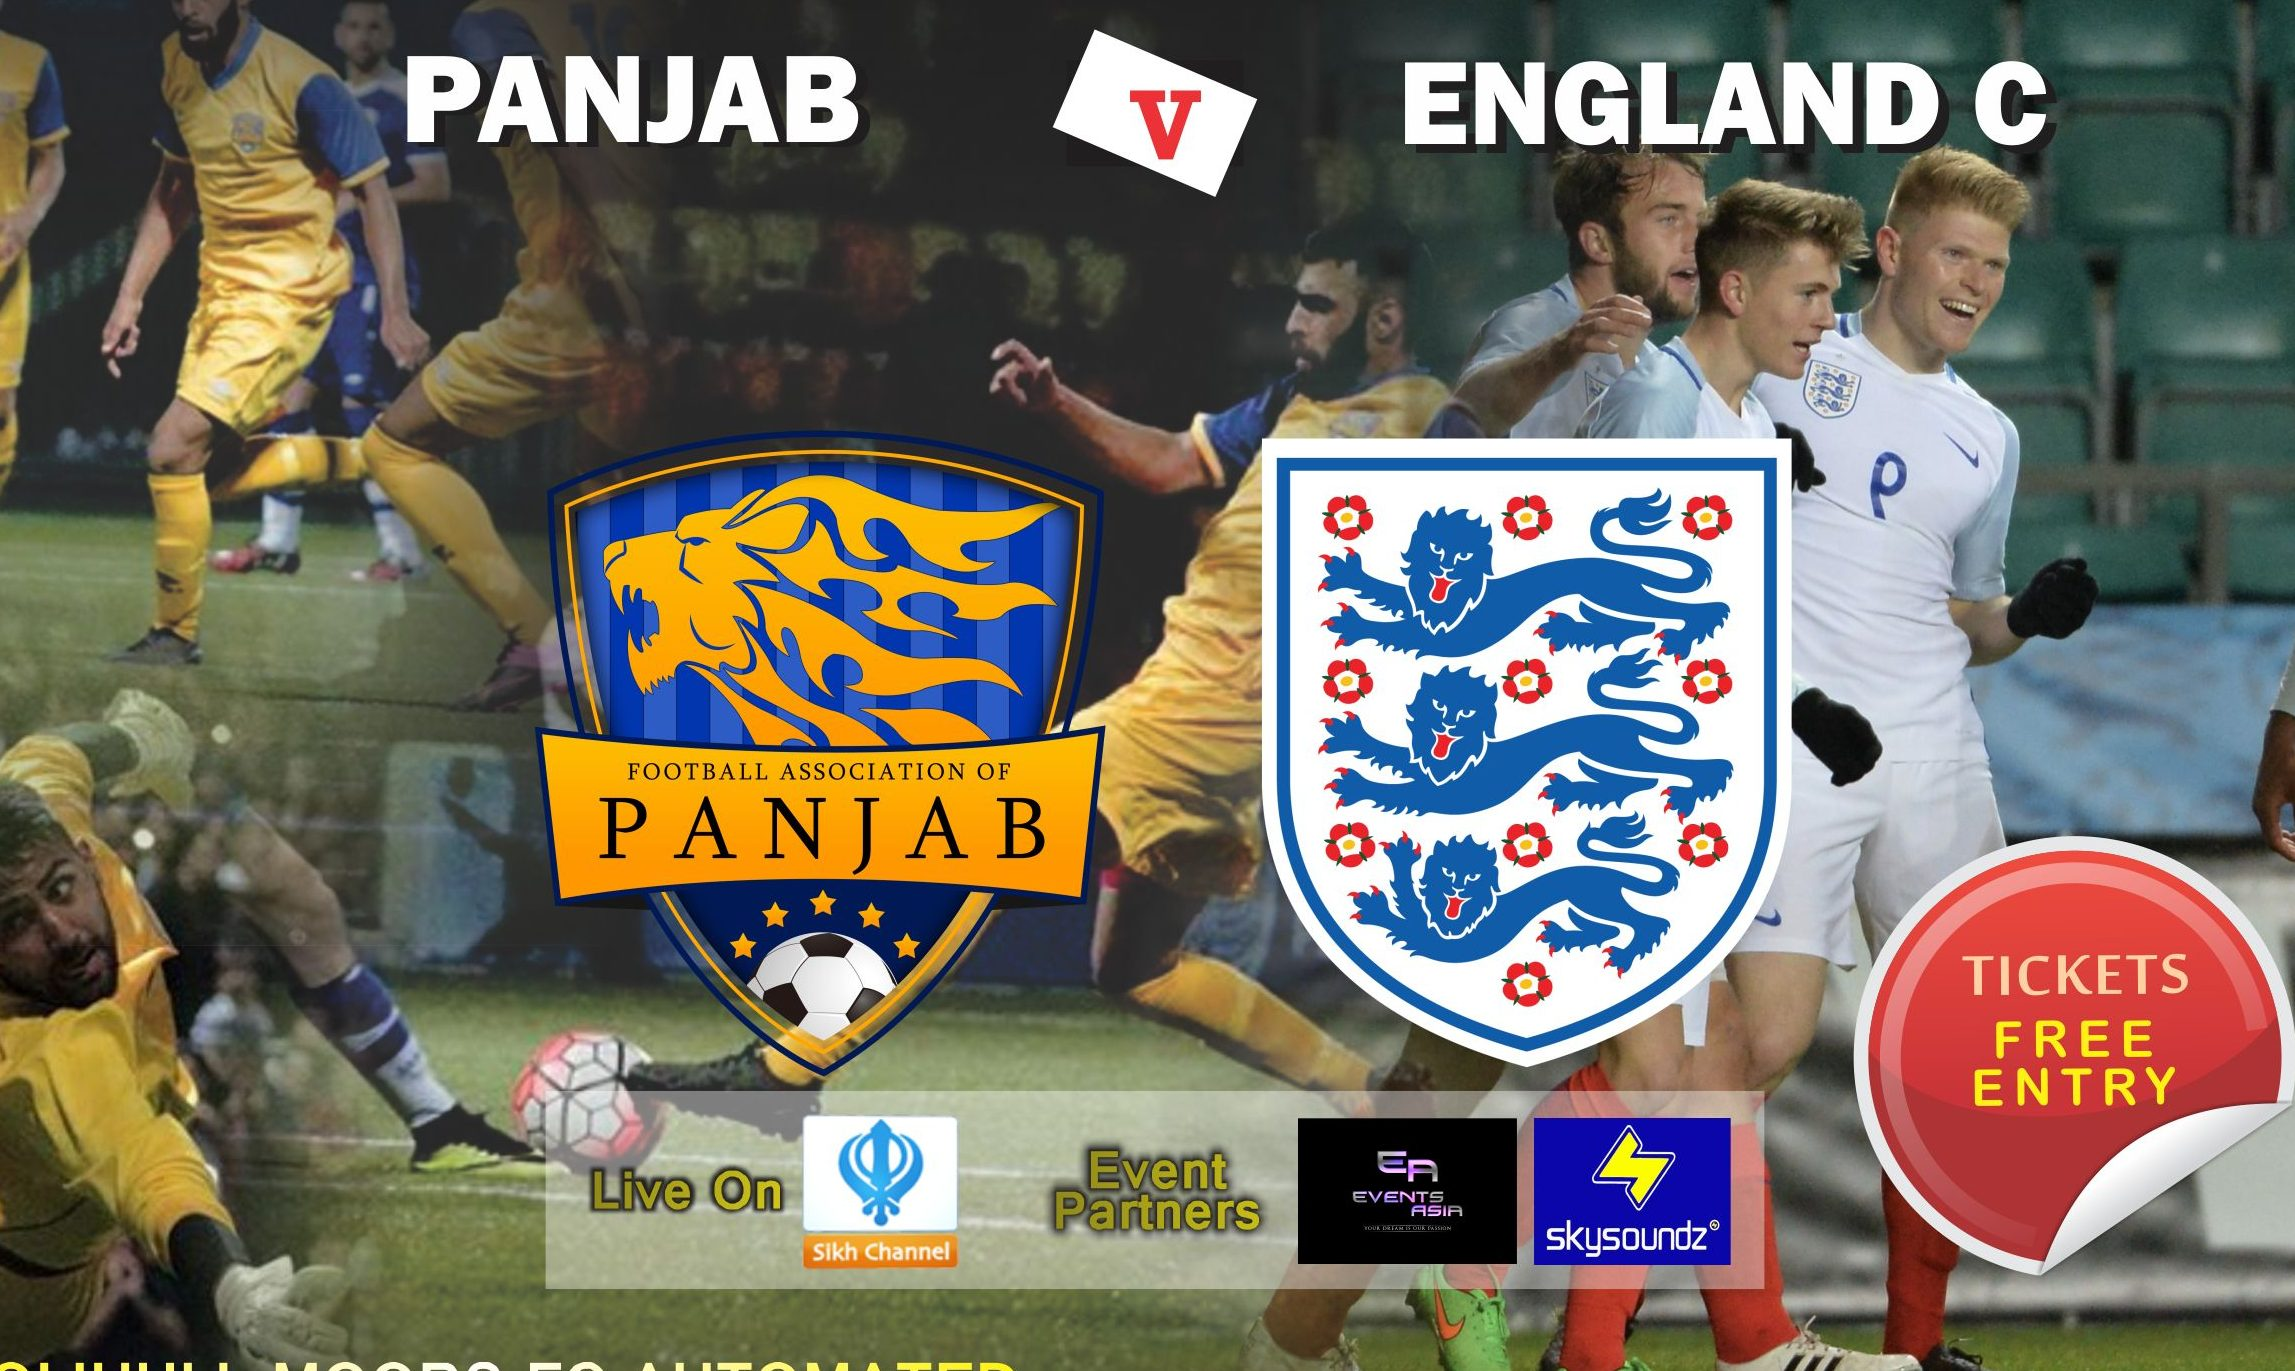 1st South Asian national team to play an England representative team